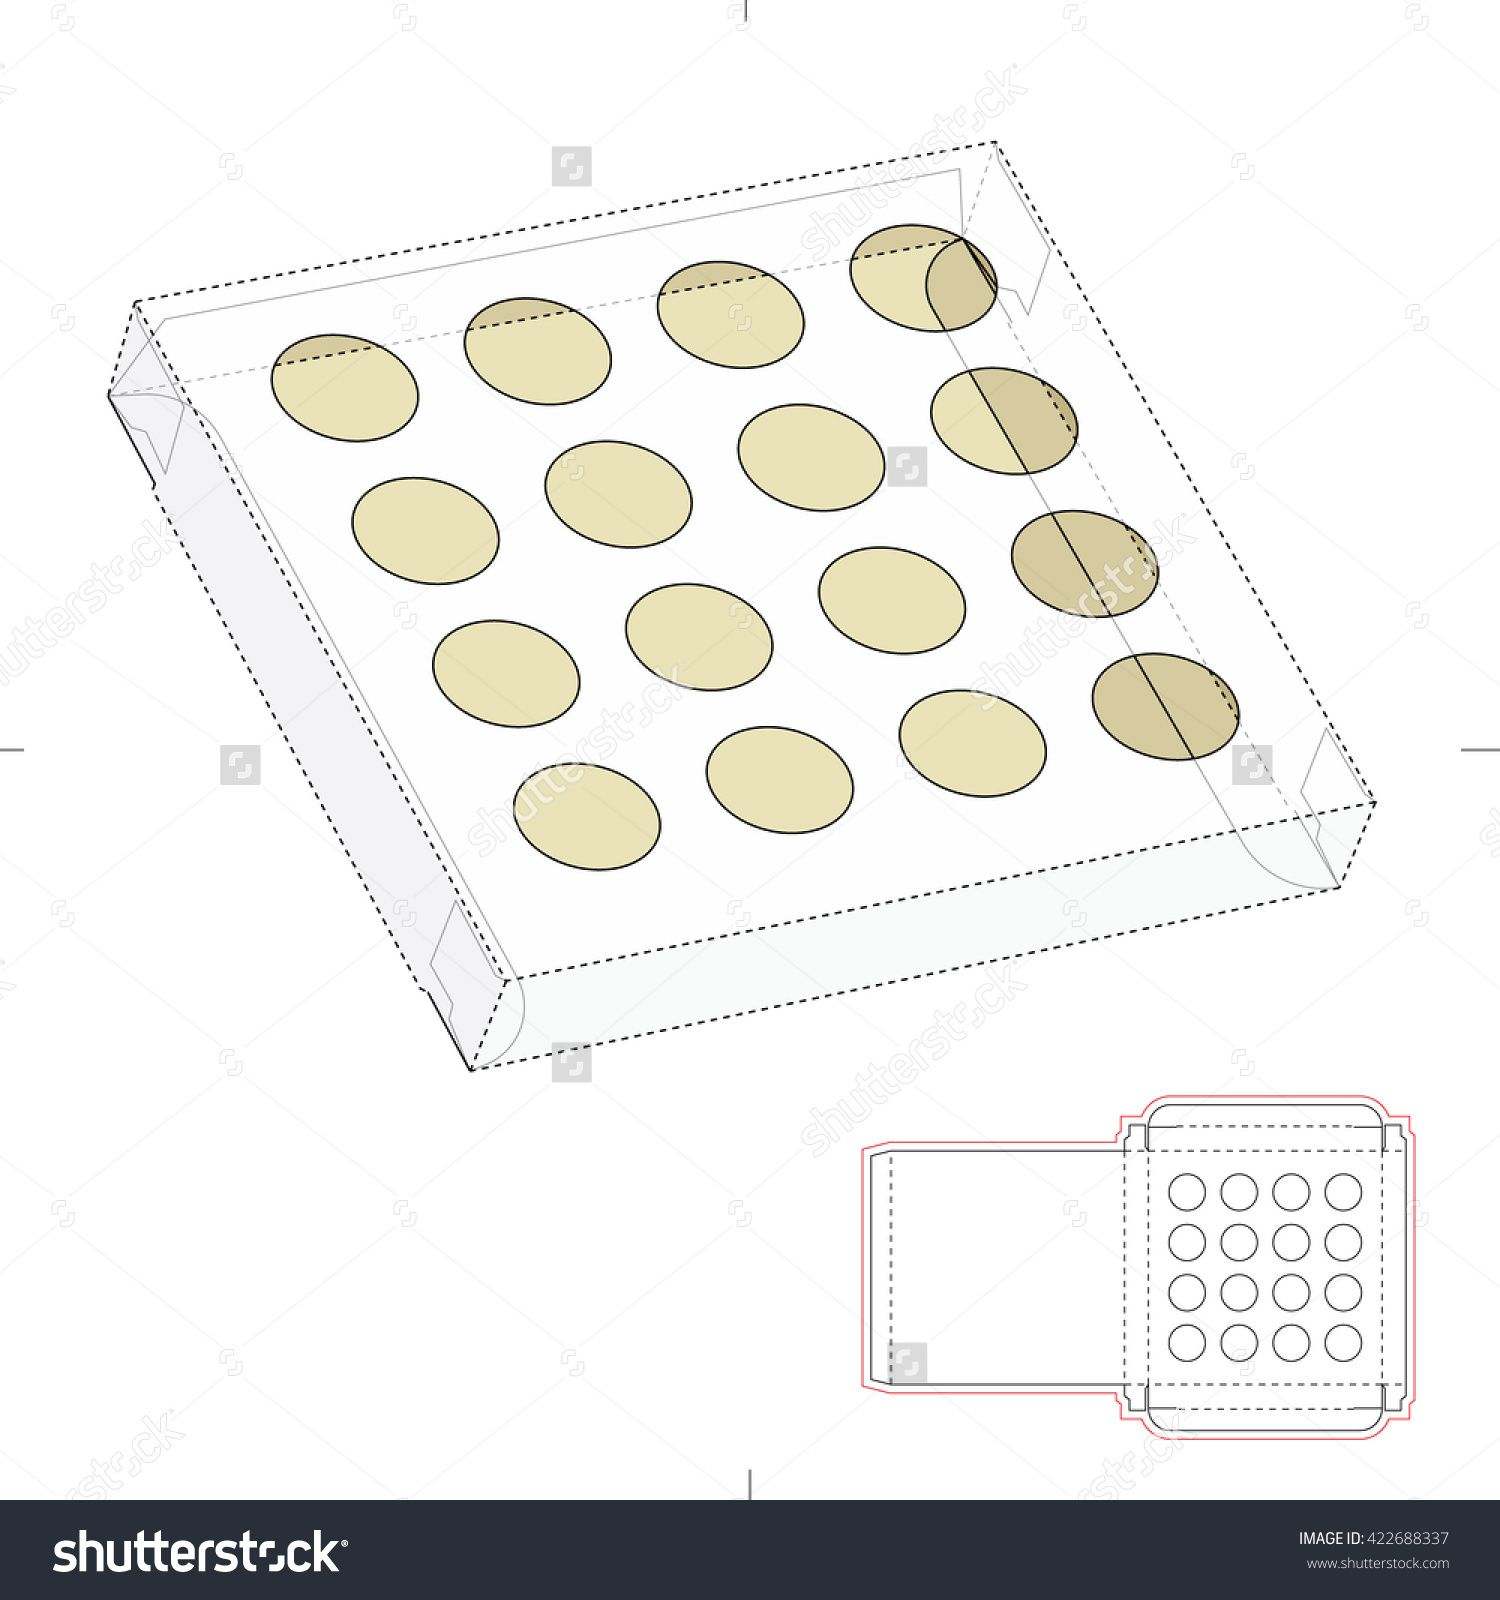 Square Tray Box With Blueprint Template Stock Vector Illustration 422688337 : Shutterstock